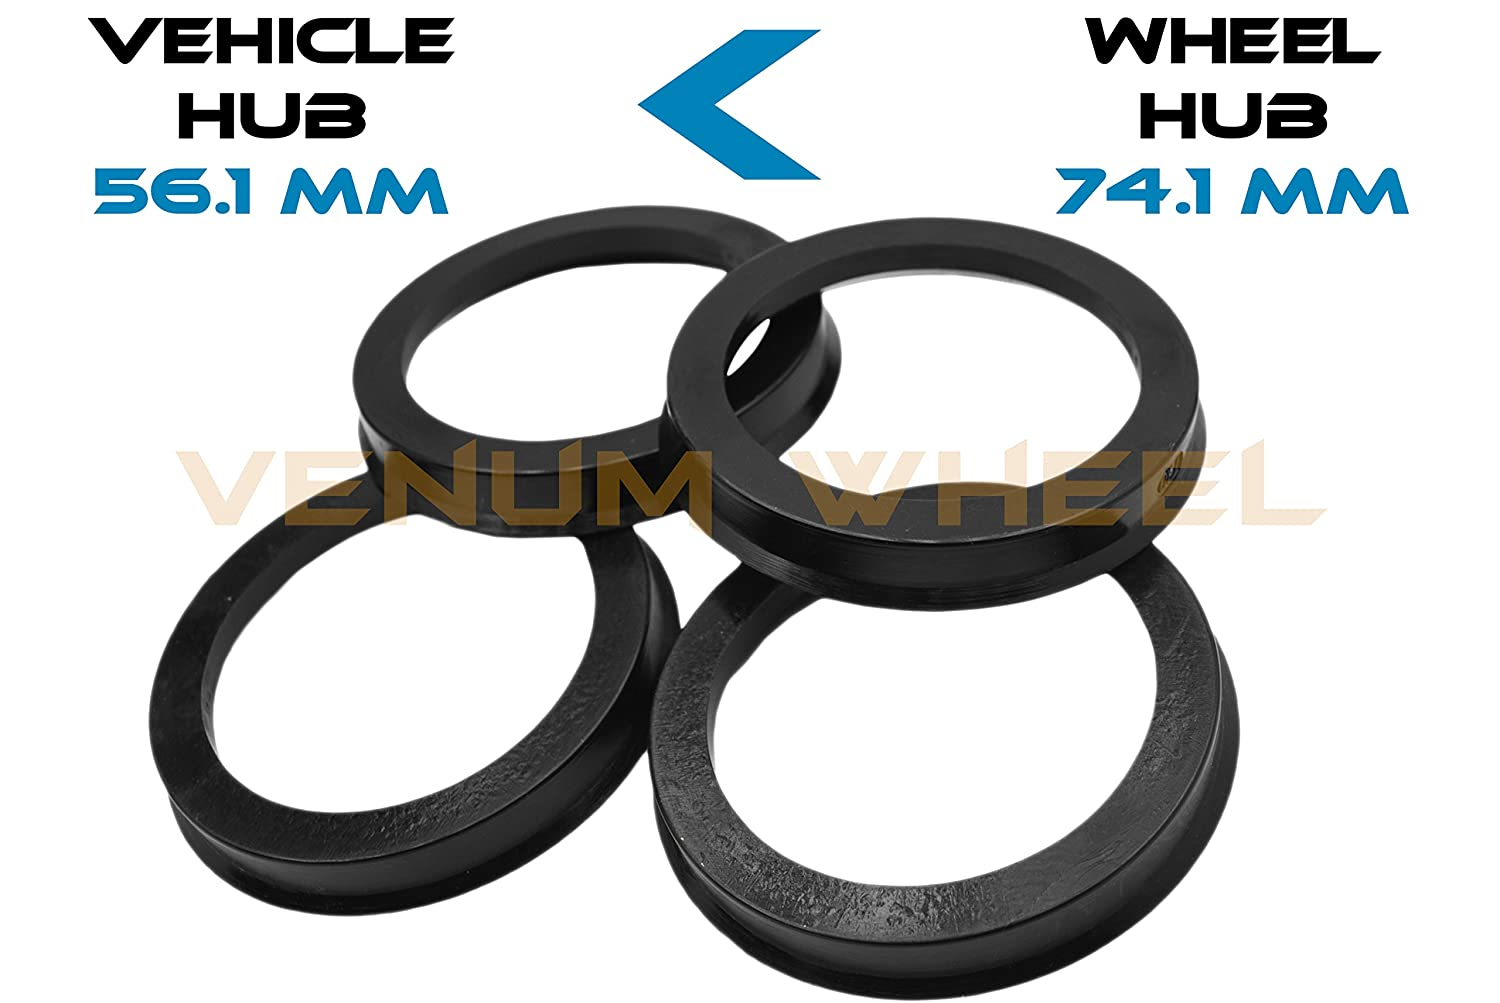 4 Hub Centric Rings 56.1 ID To 74.1 OD Black Polycarbonate Material ( Vehicle 56.1mm to Wheel 74.1mm) VENUM WHEEL ACCESSORIES